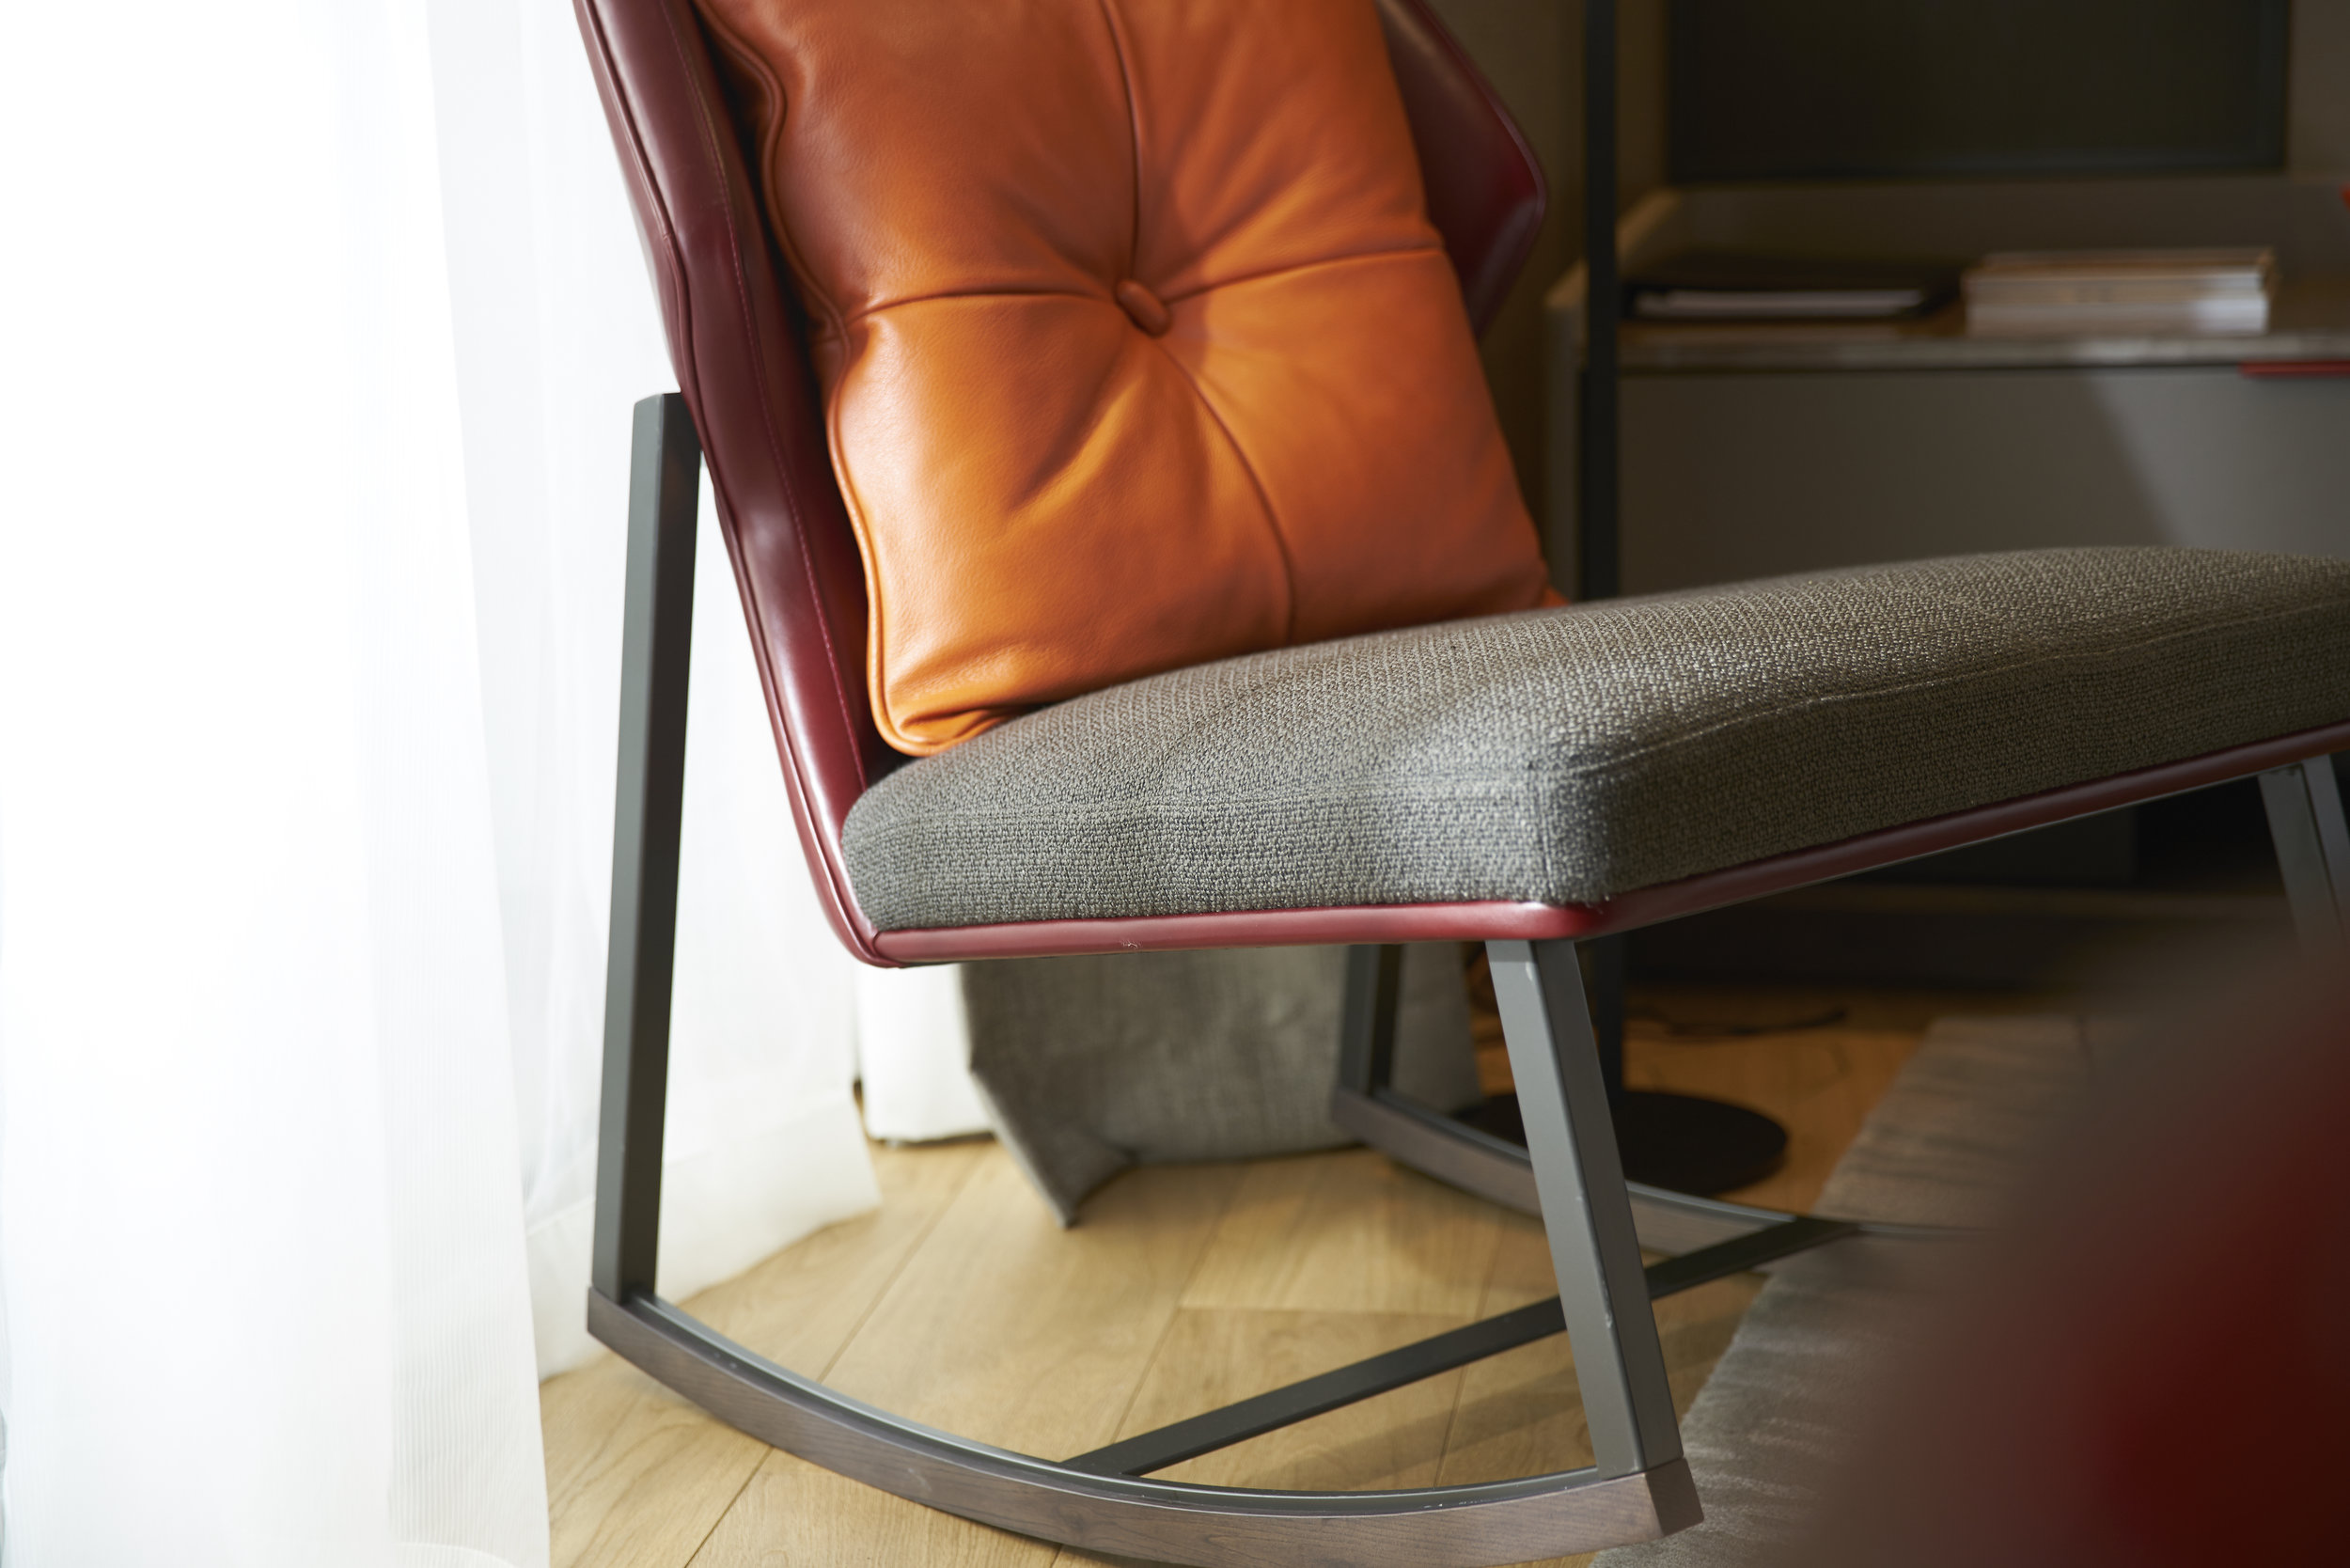 The accent chair is a modern rocking chair.